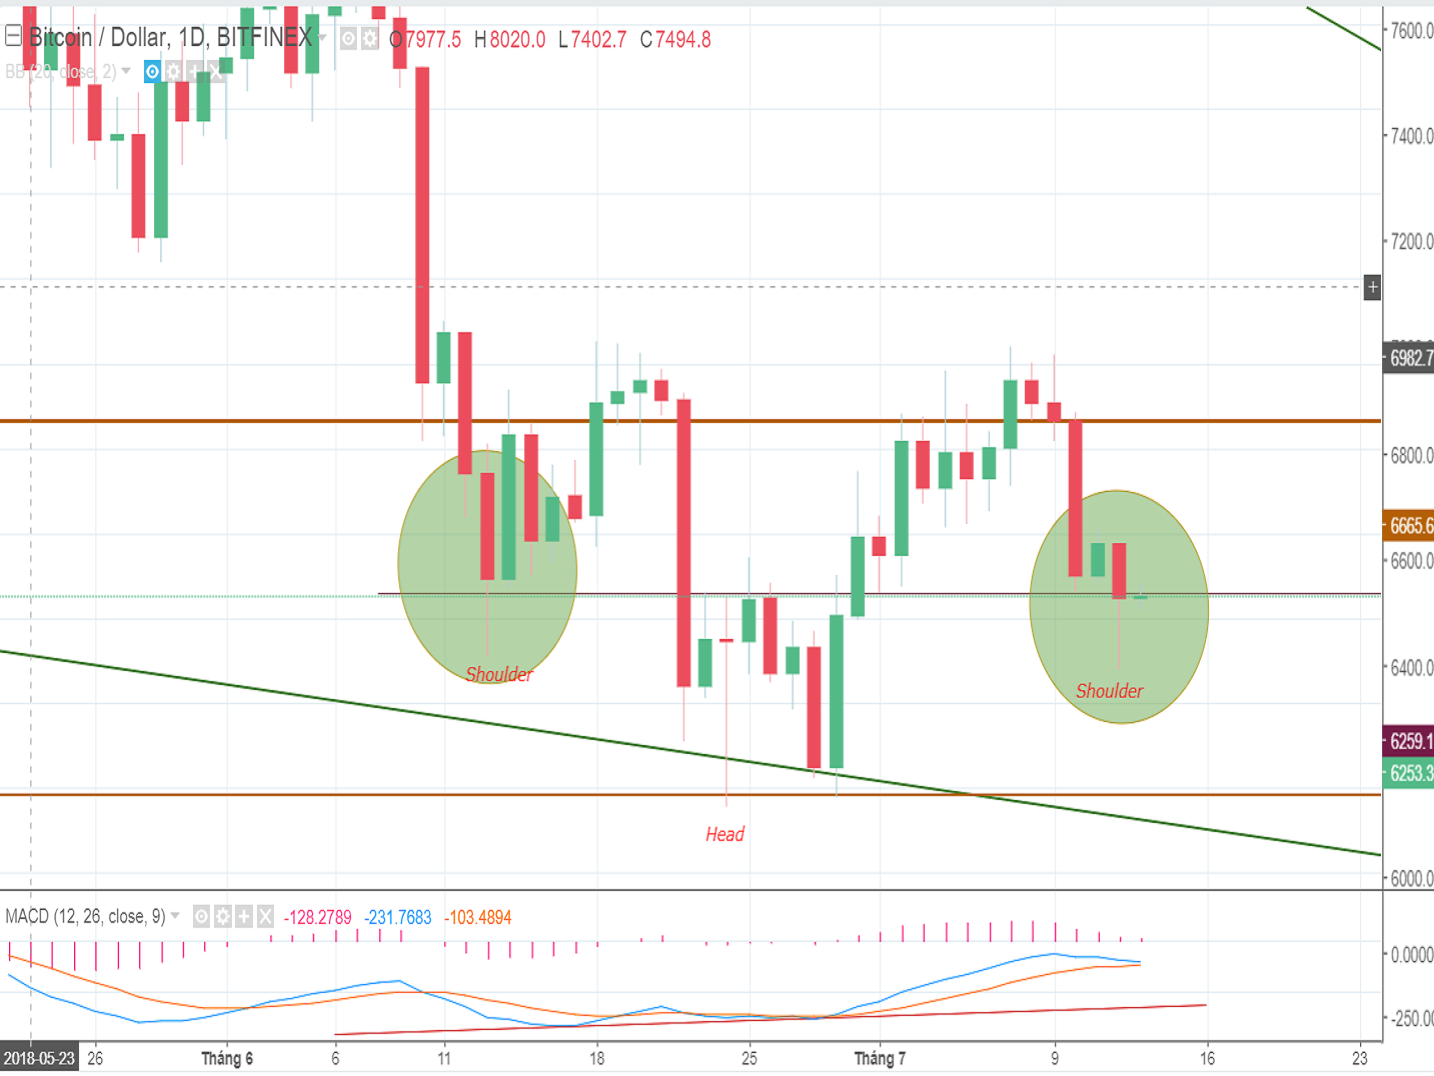 Bitcoin price analysis and forecast (Friday, July 13th): The bear continues to pose a threat to the Bitcoin price